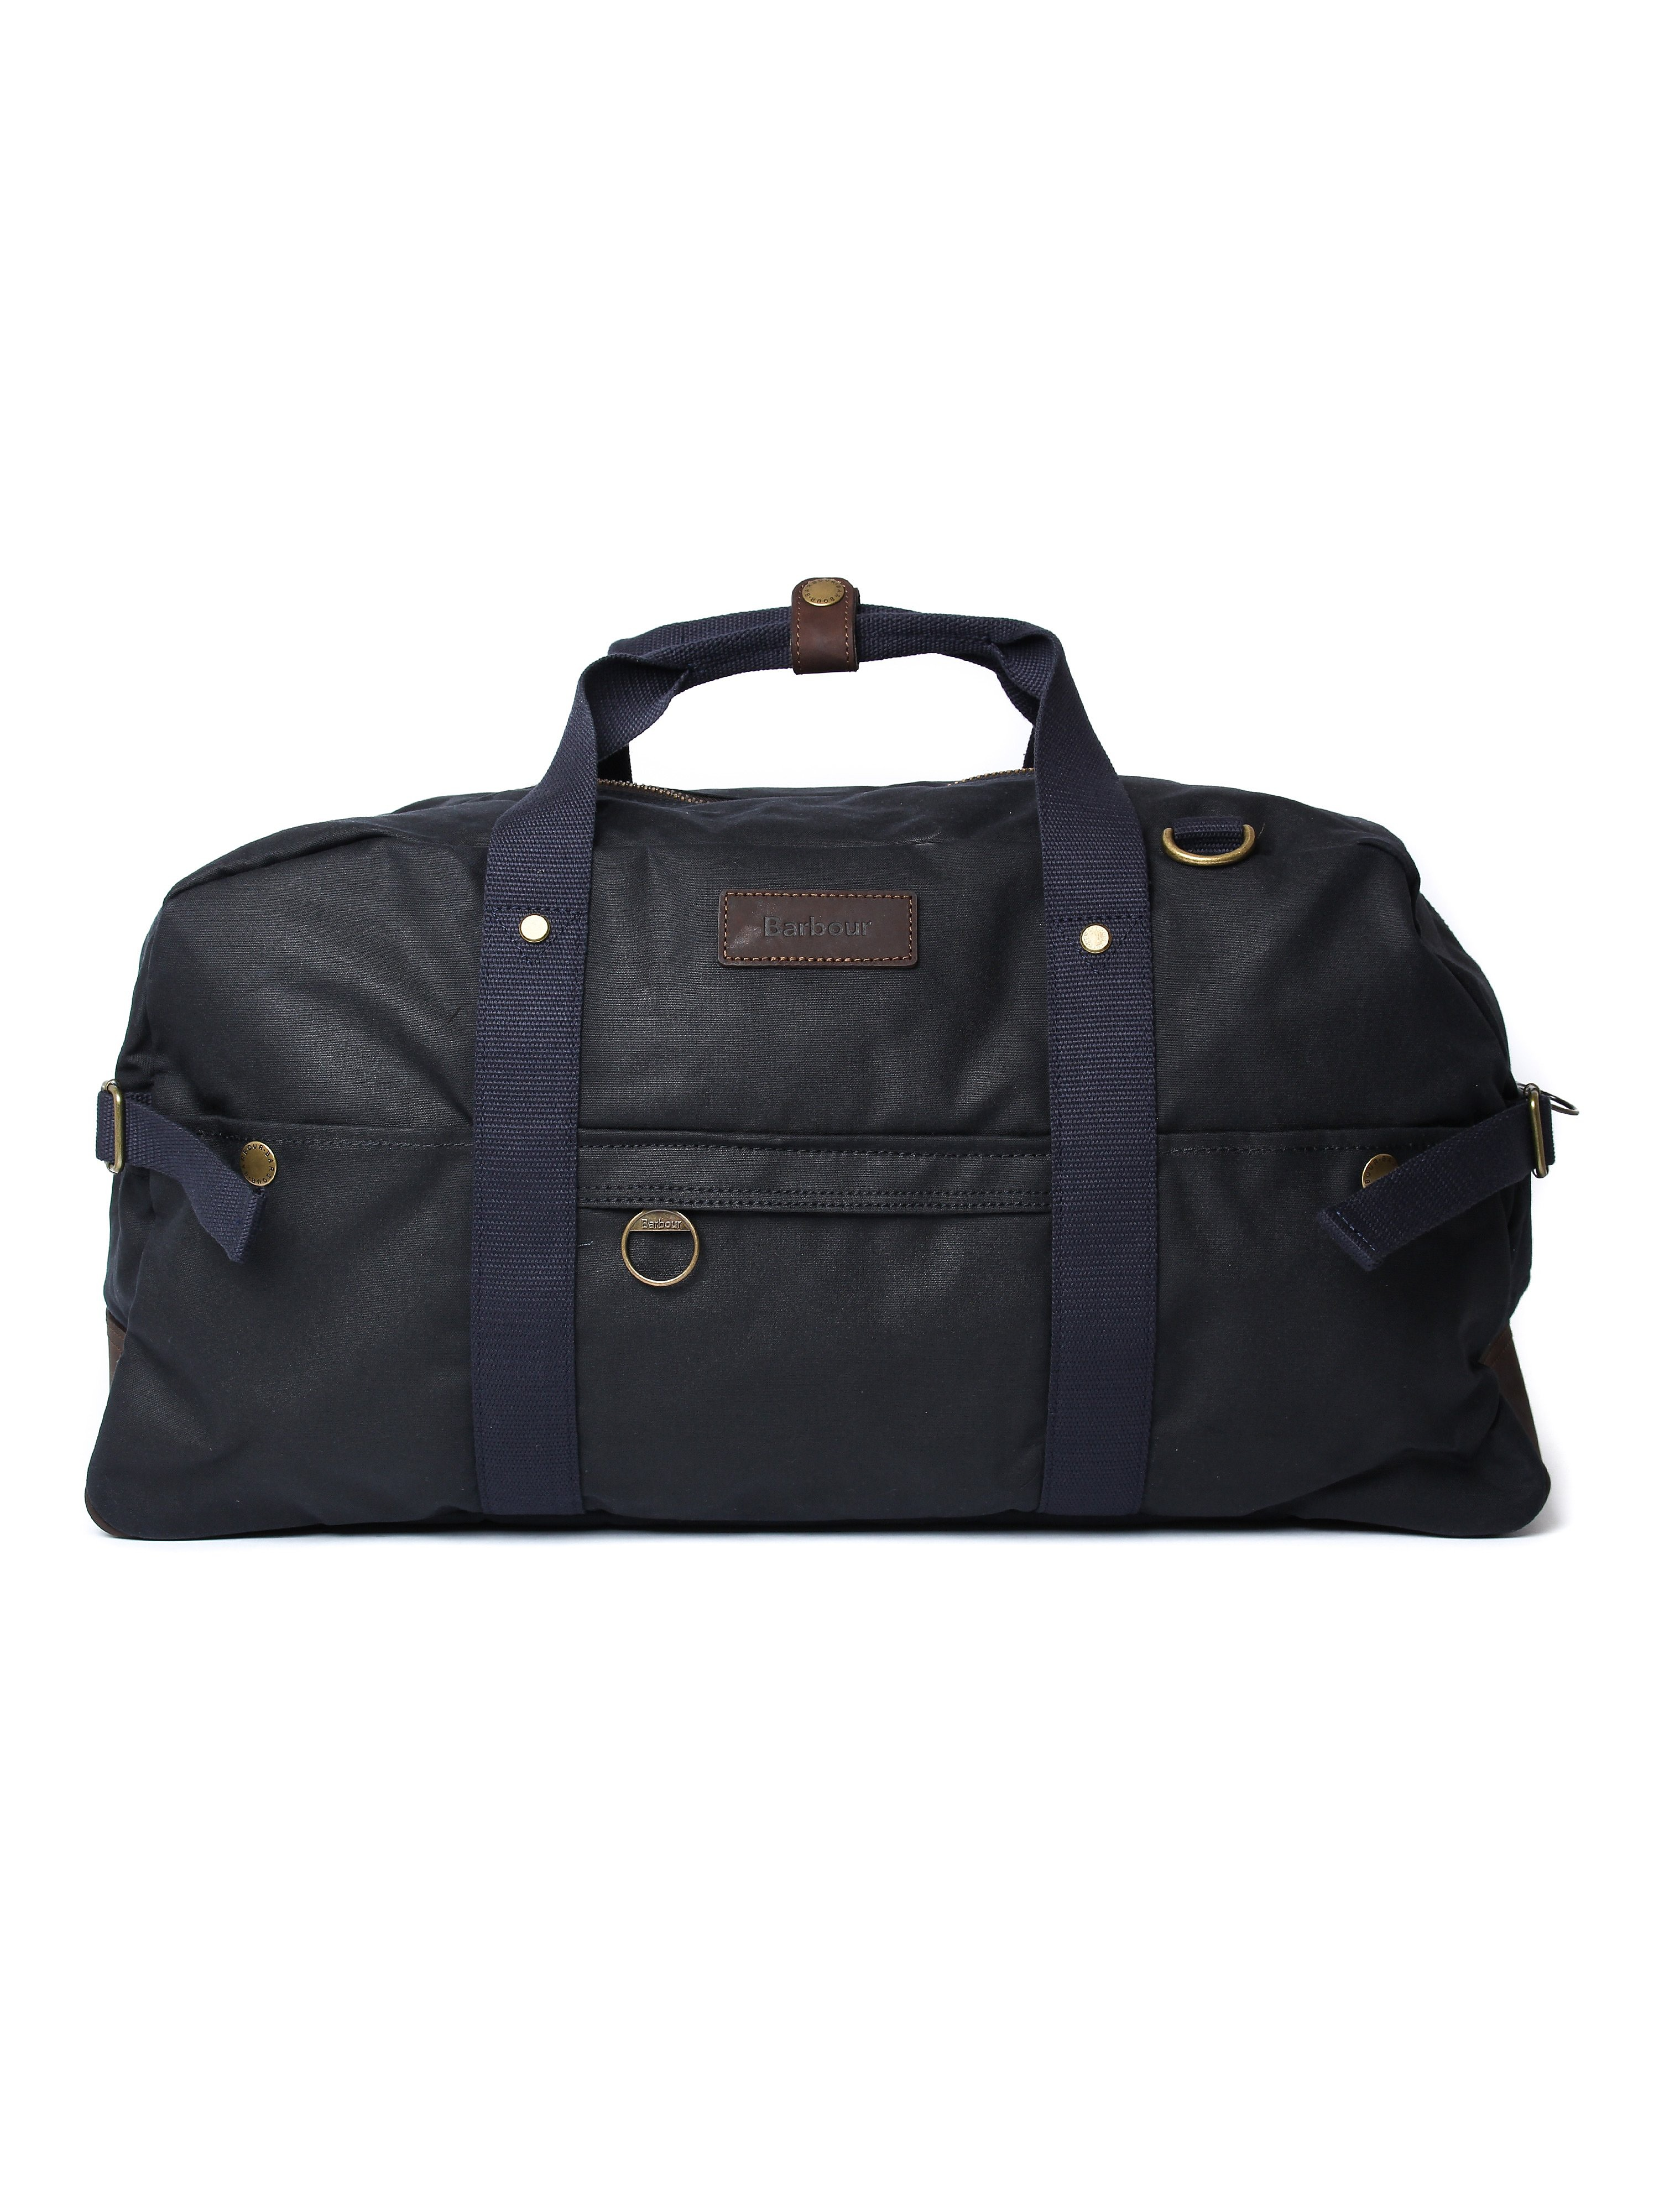 Barbour Gamefair Wax Cotton Holdall Bag - Navy